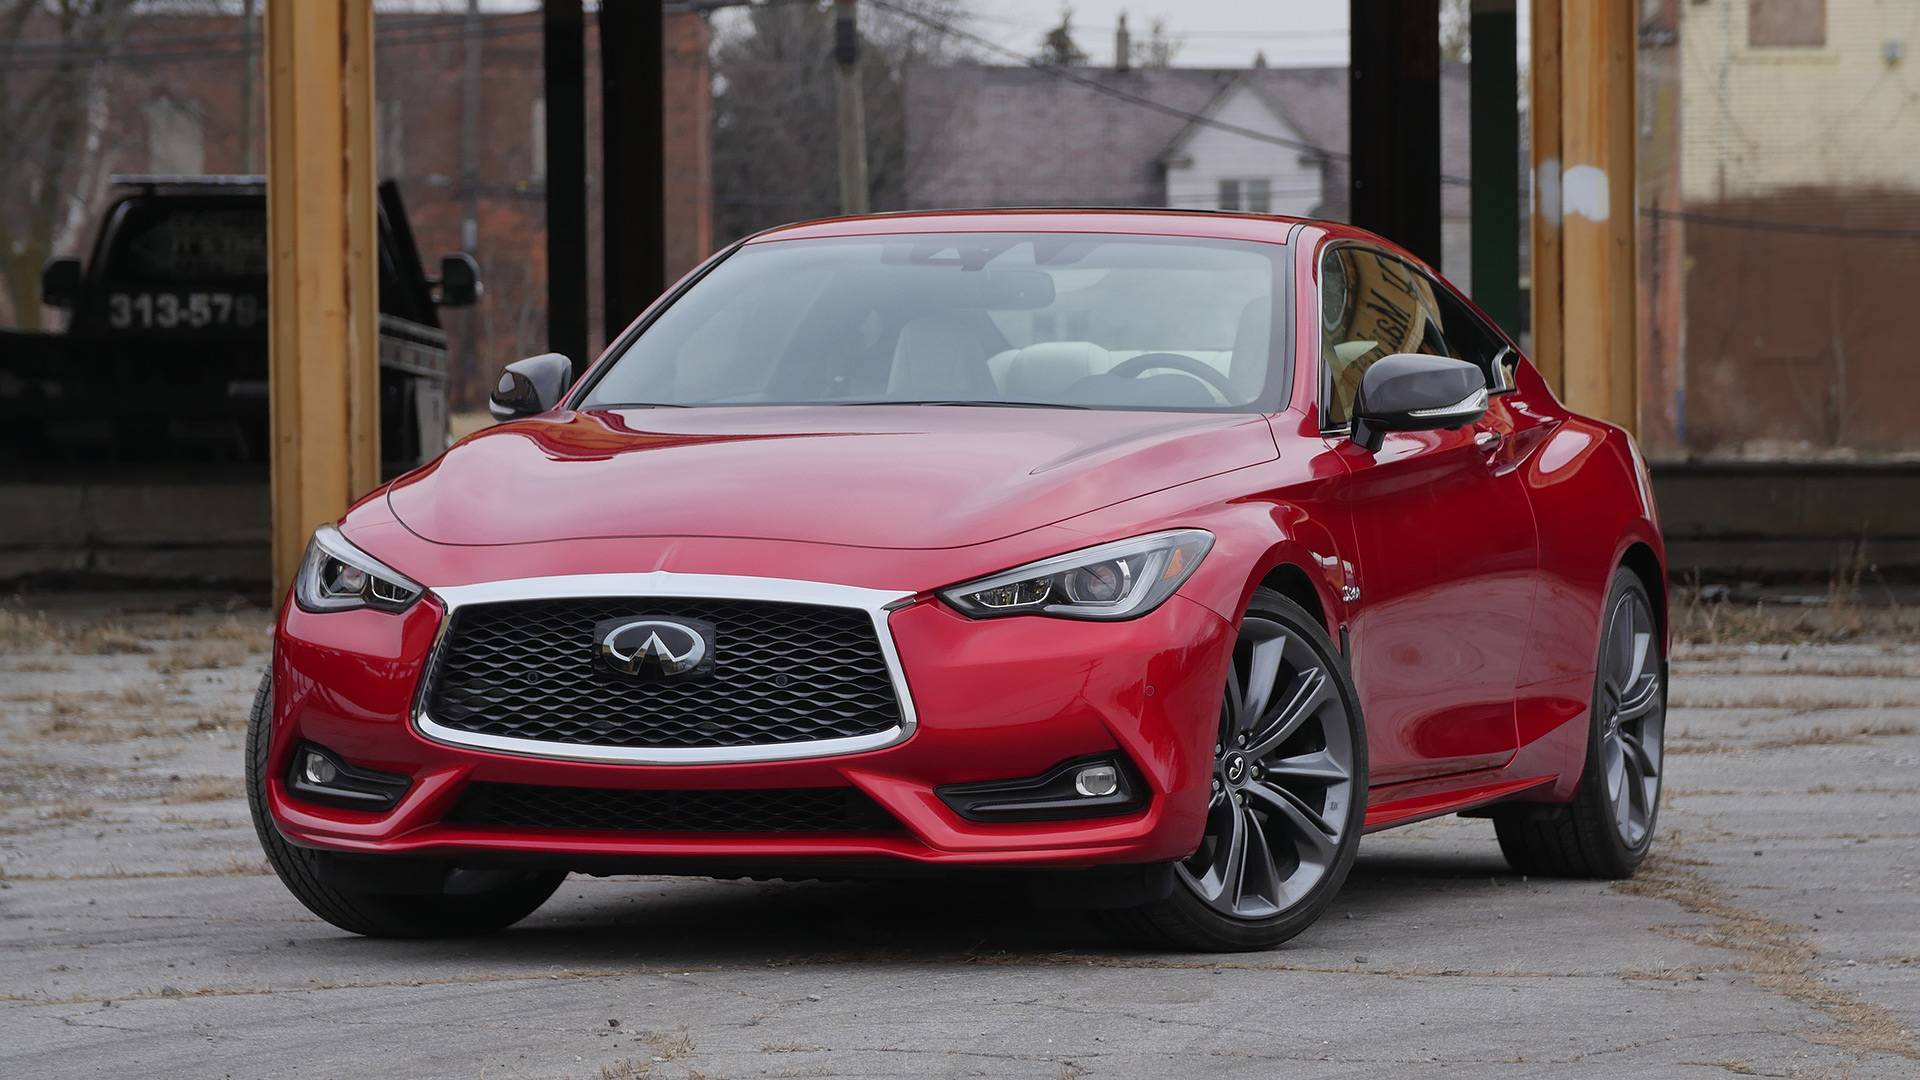 2020 Infiniti Q70 Redesign, Changes, Release Date, And Spy Photos >> Infiniti Suggests Next Q50 Q60 Q70 Will Lose Rwd Platform